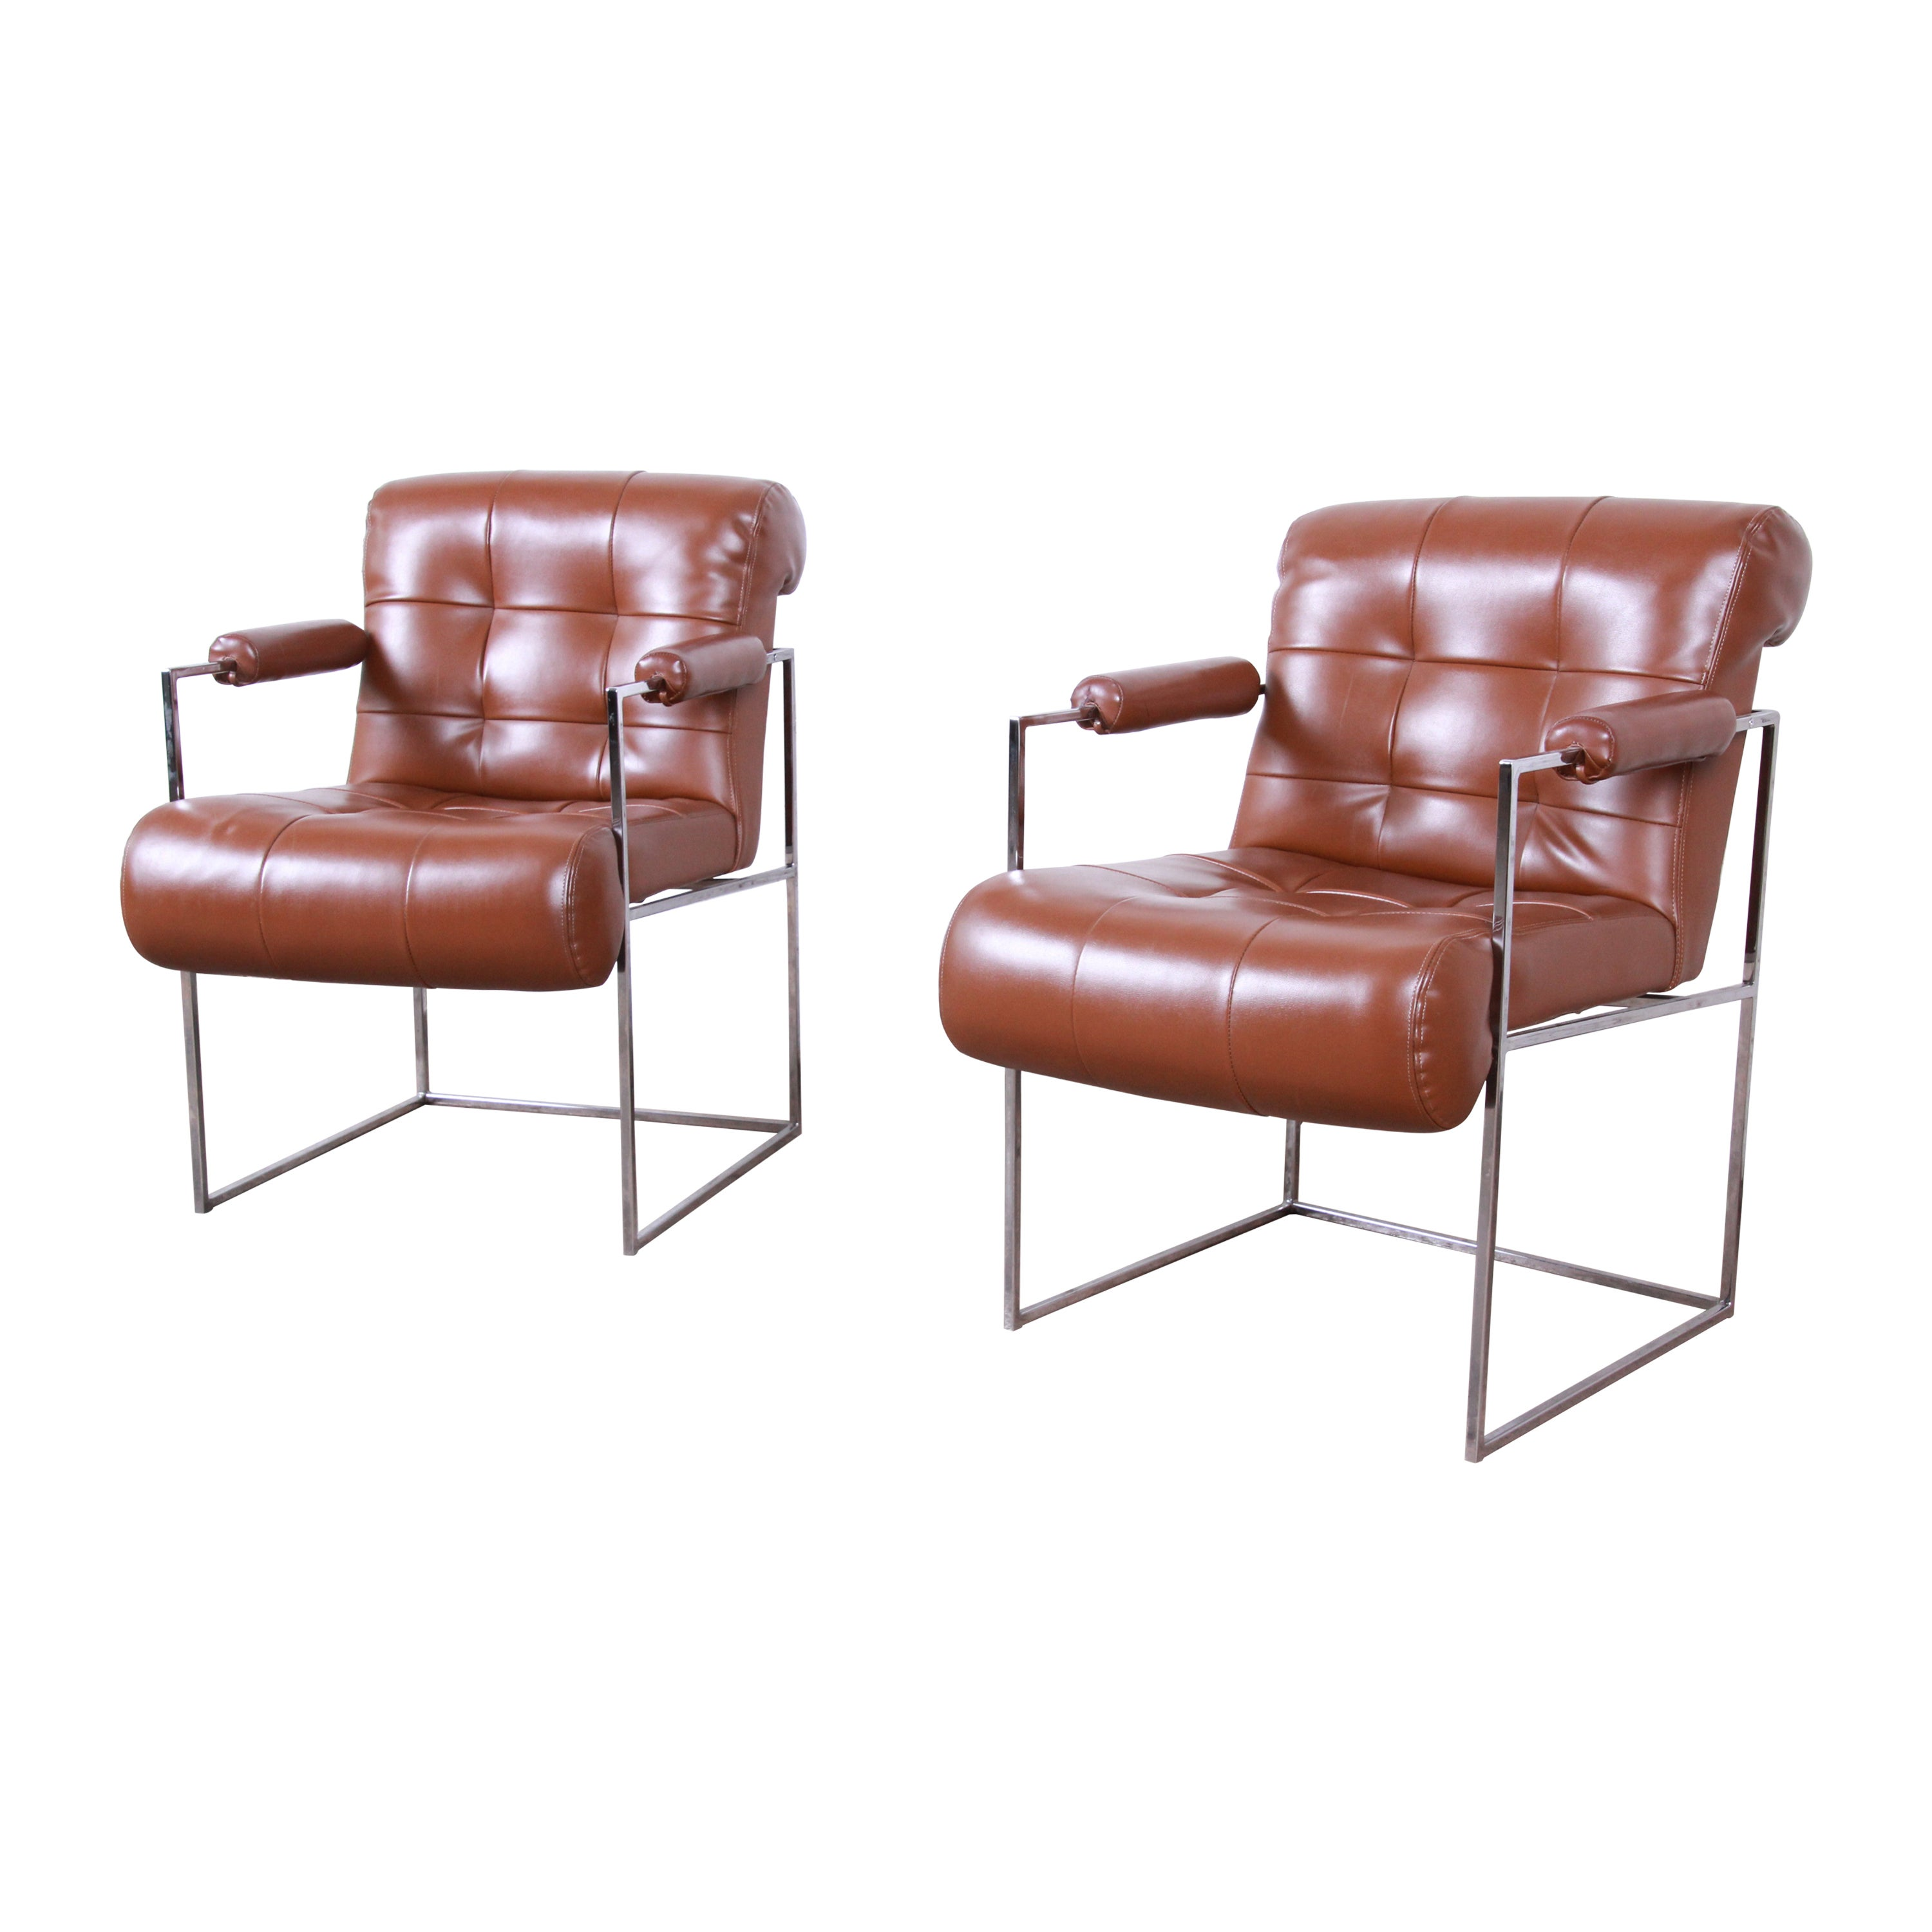 Milo Baughman for Thayer Coggin Leather and Chrome Lounge Chairs, Pair